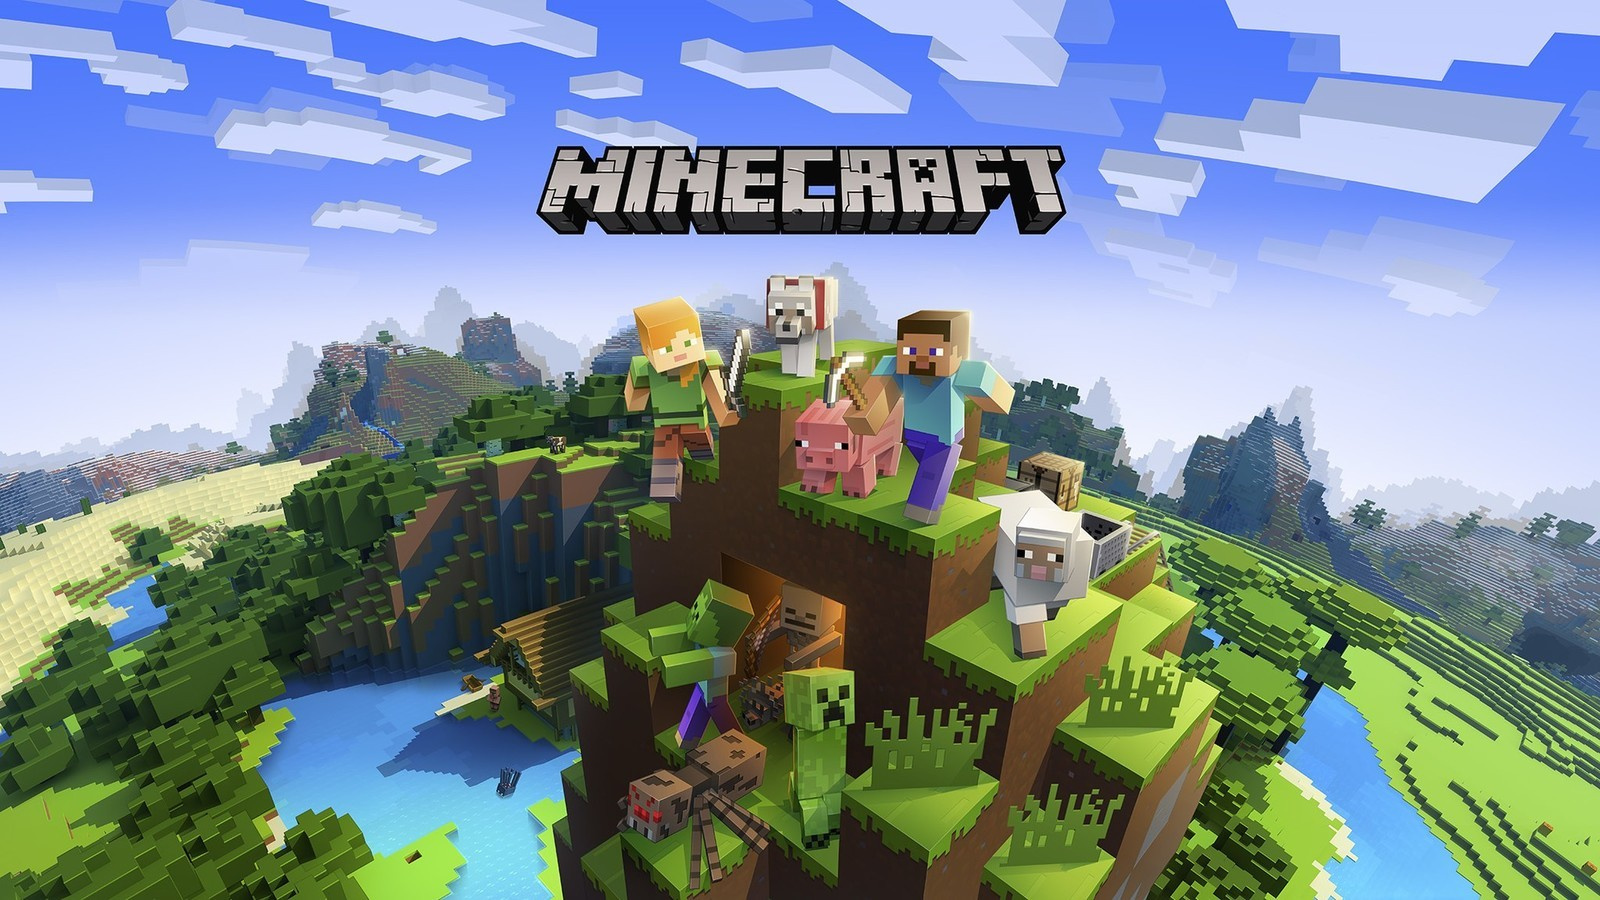 Minecraft's Better Together Update Could Yet Come to PS4 - Push Square